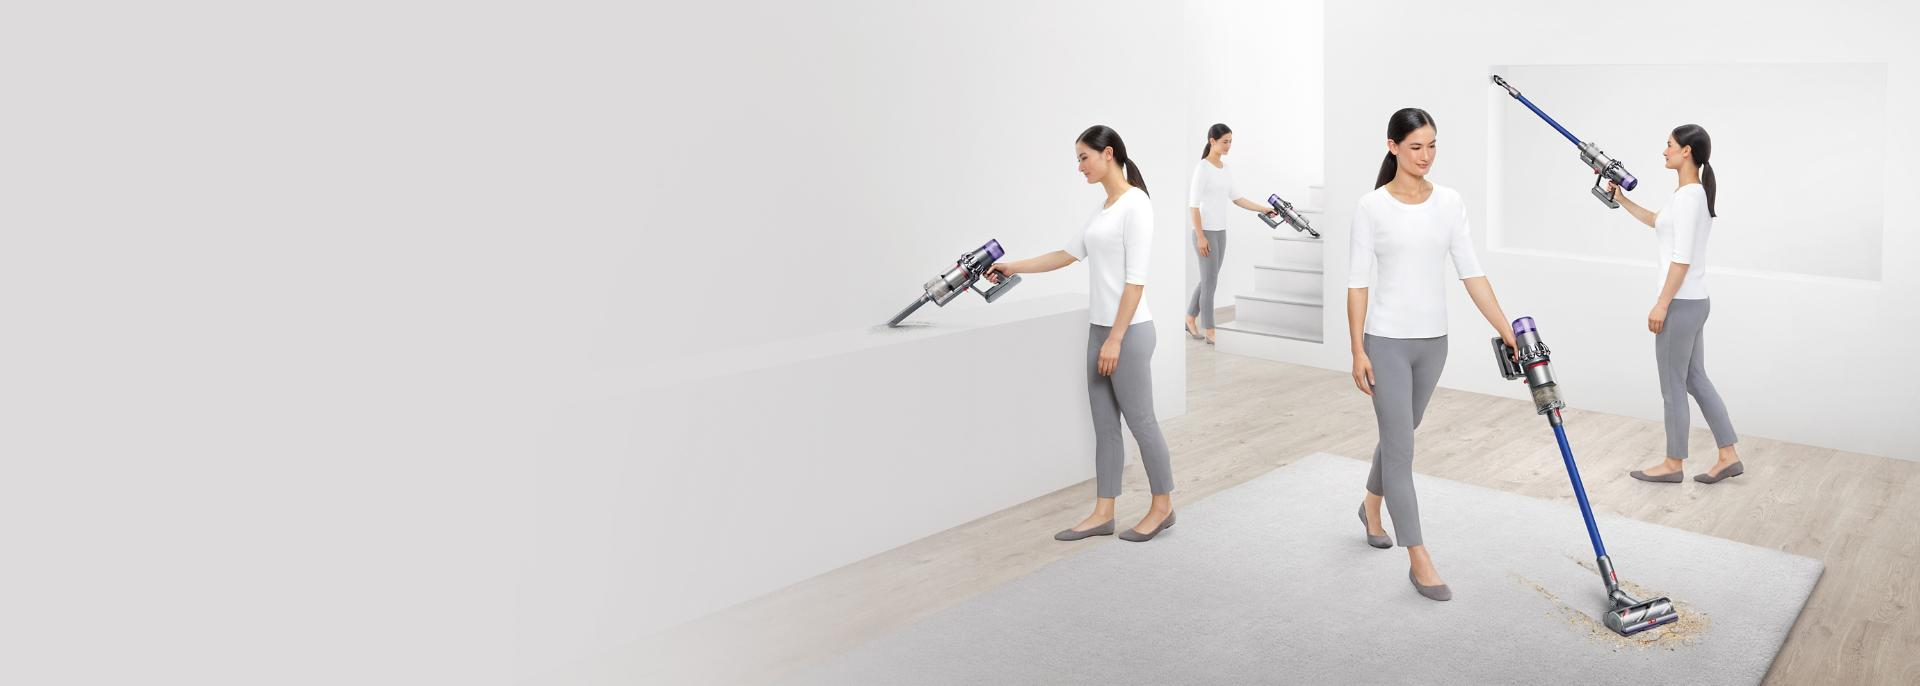 Dyson V10 cordless vacuum with a variety of accessories